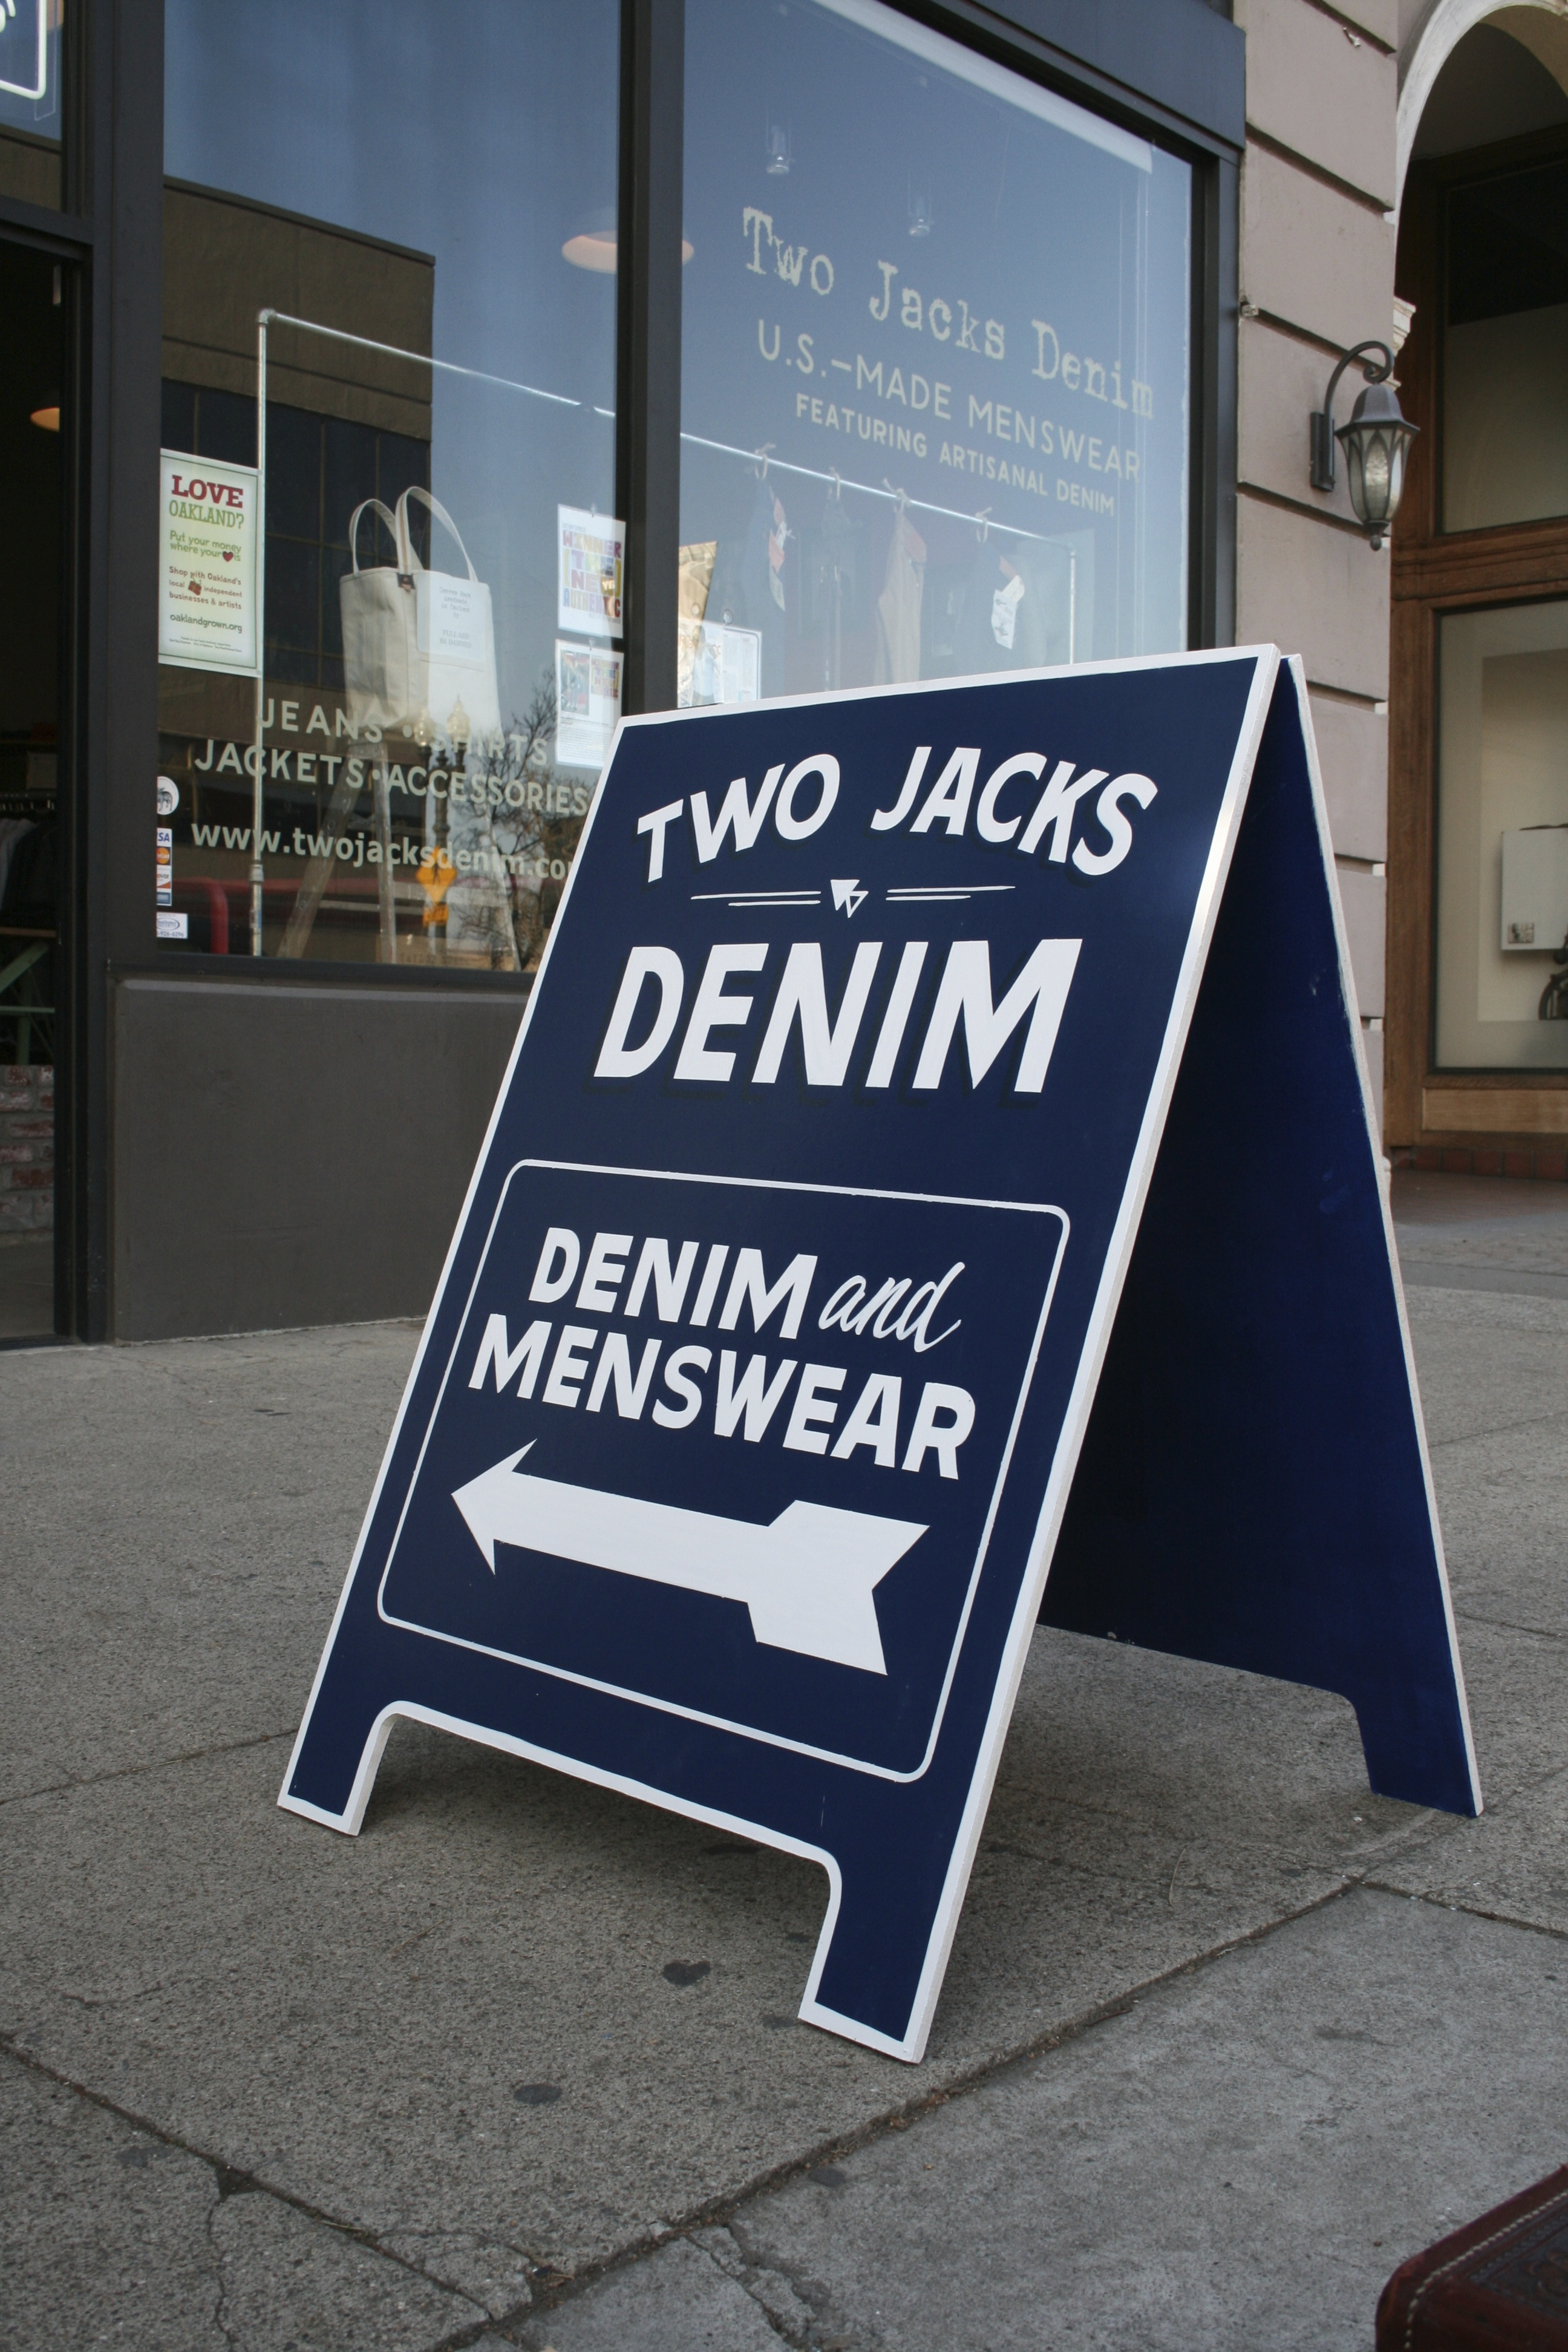 Two Jacks Denim